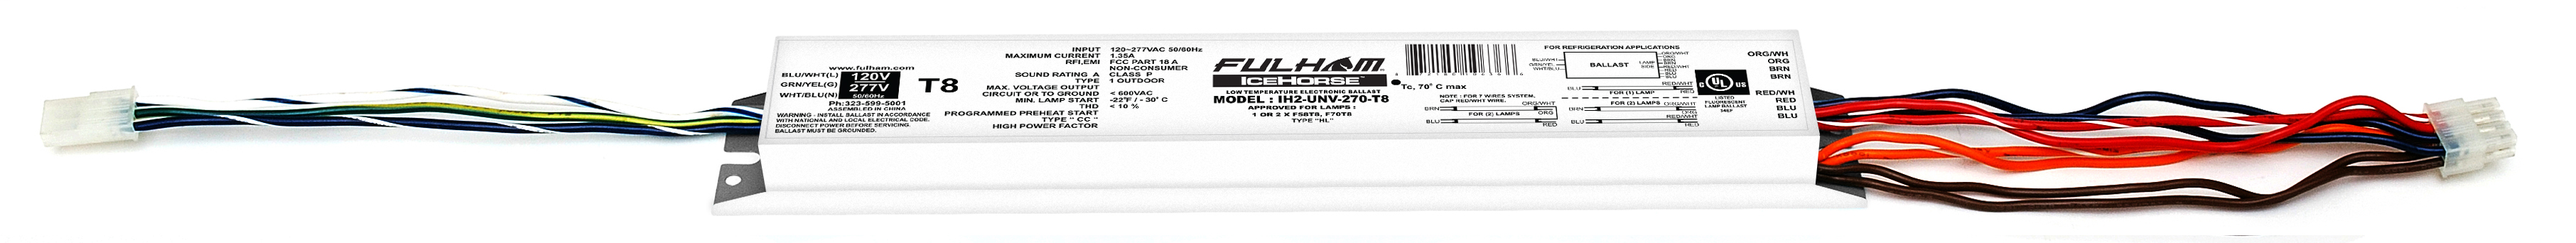 Fulham,IH2-UNV-270-T8,1 OR 2XF70T8 OR F58T8